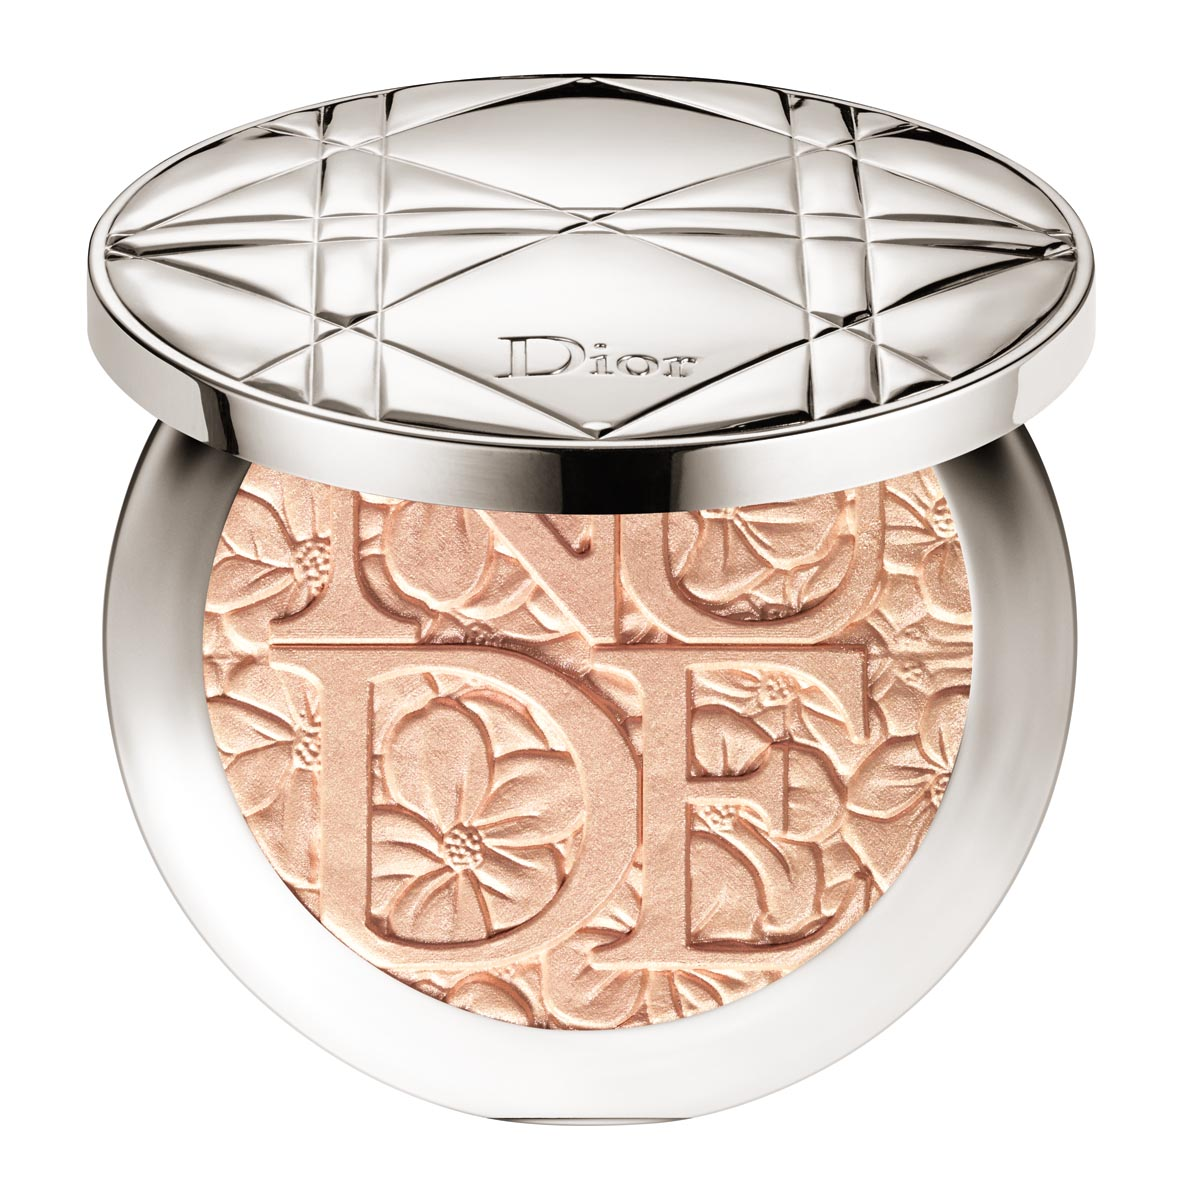 DIOR Glowing Gardens Diorskin Nude Air Glowing Nude